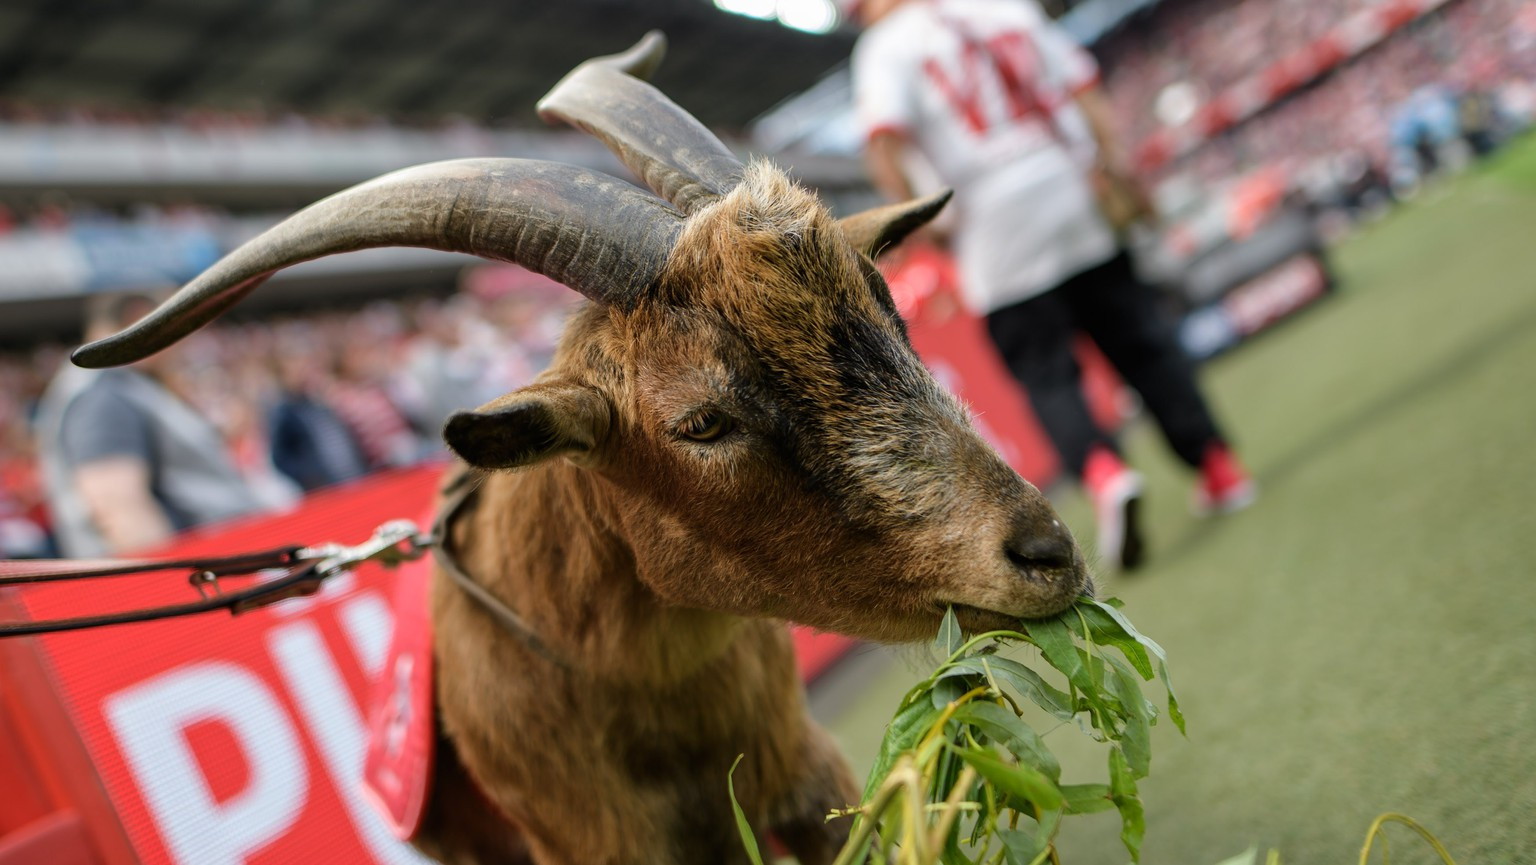 epa05976400 Colognes mascotte Hennes VIII having lunch during the German Bundesliga soccer match between 1.FC Koeln (Cologne) and FSV Mainz 05 in Cologne, Germany, 20 May 2017.  EPA/JOERG SCHUELER EMBARGO CONDITIONS - ATTENTION: Due to the accreditation guidelines, the DFL only permits the publication and utilisation of up to 15 pictures per match on the internet and in online media during the match.